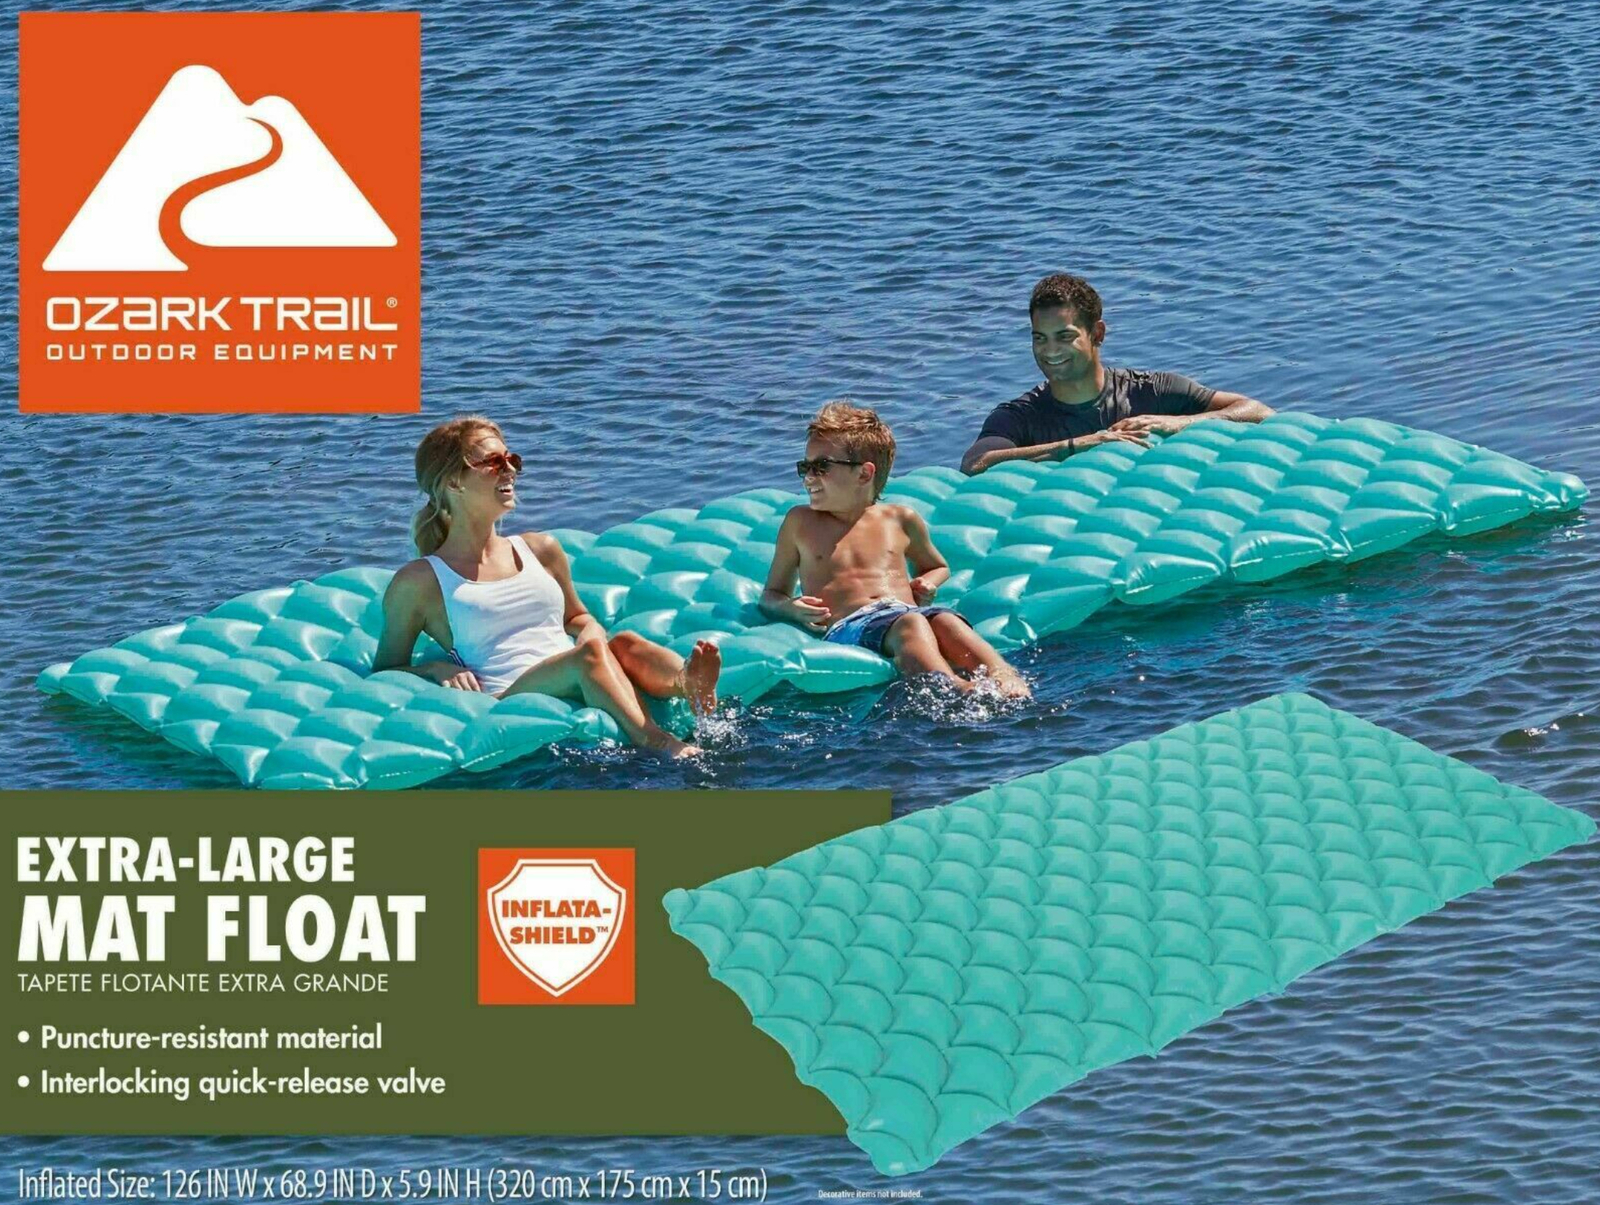 Ozark Trail Paradise Lounge Pool Float